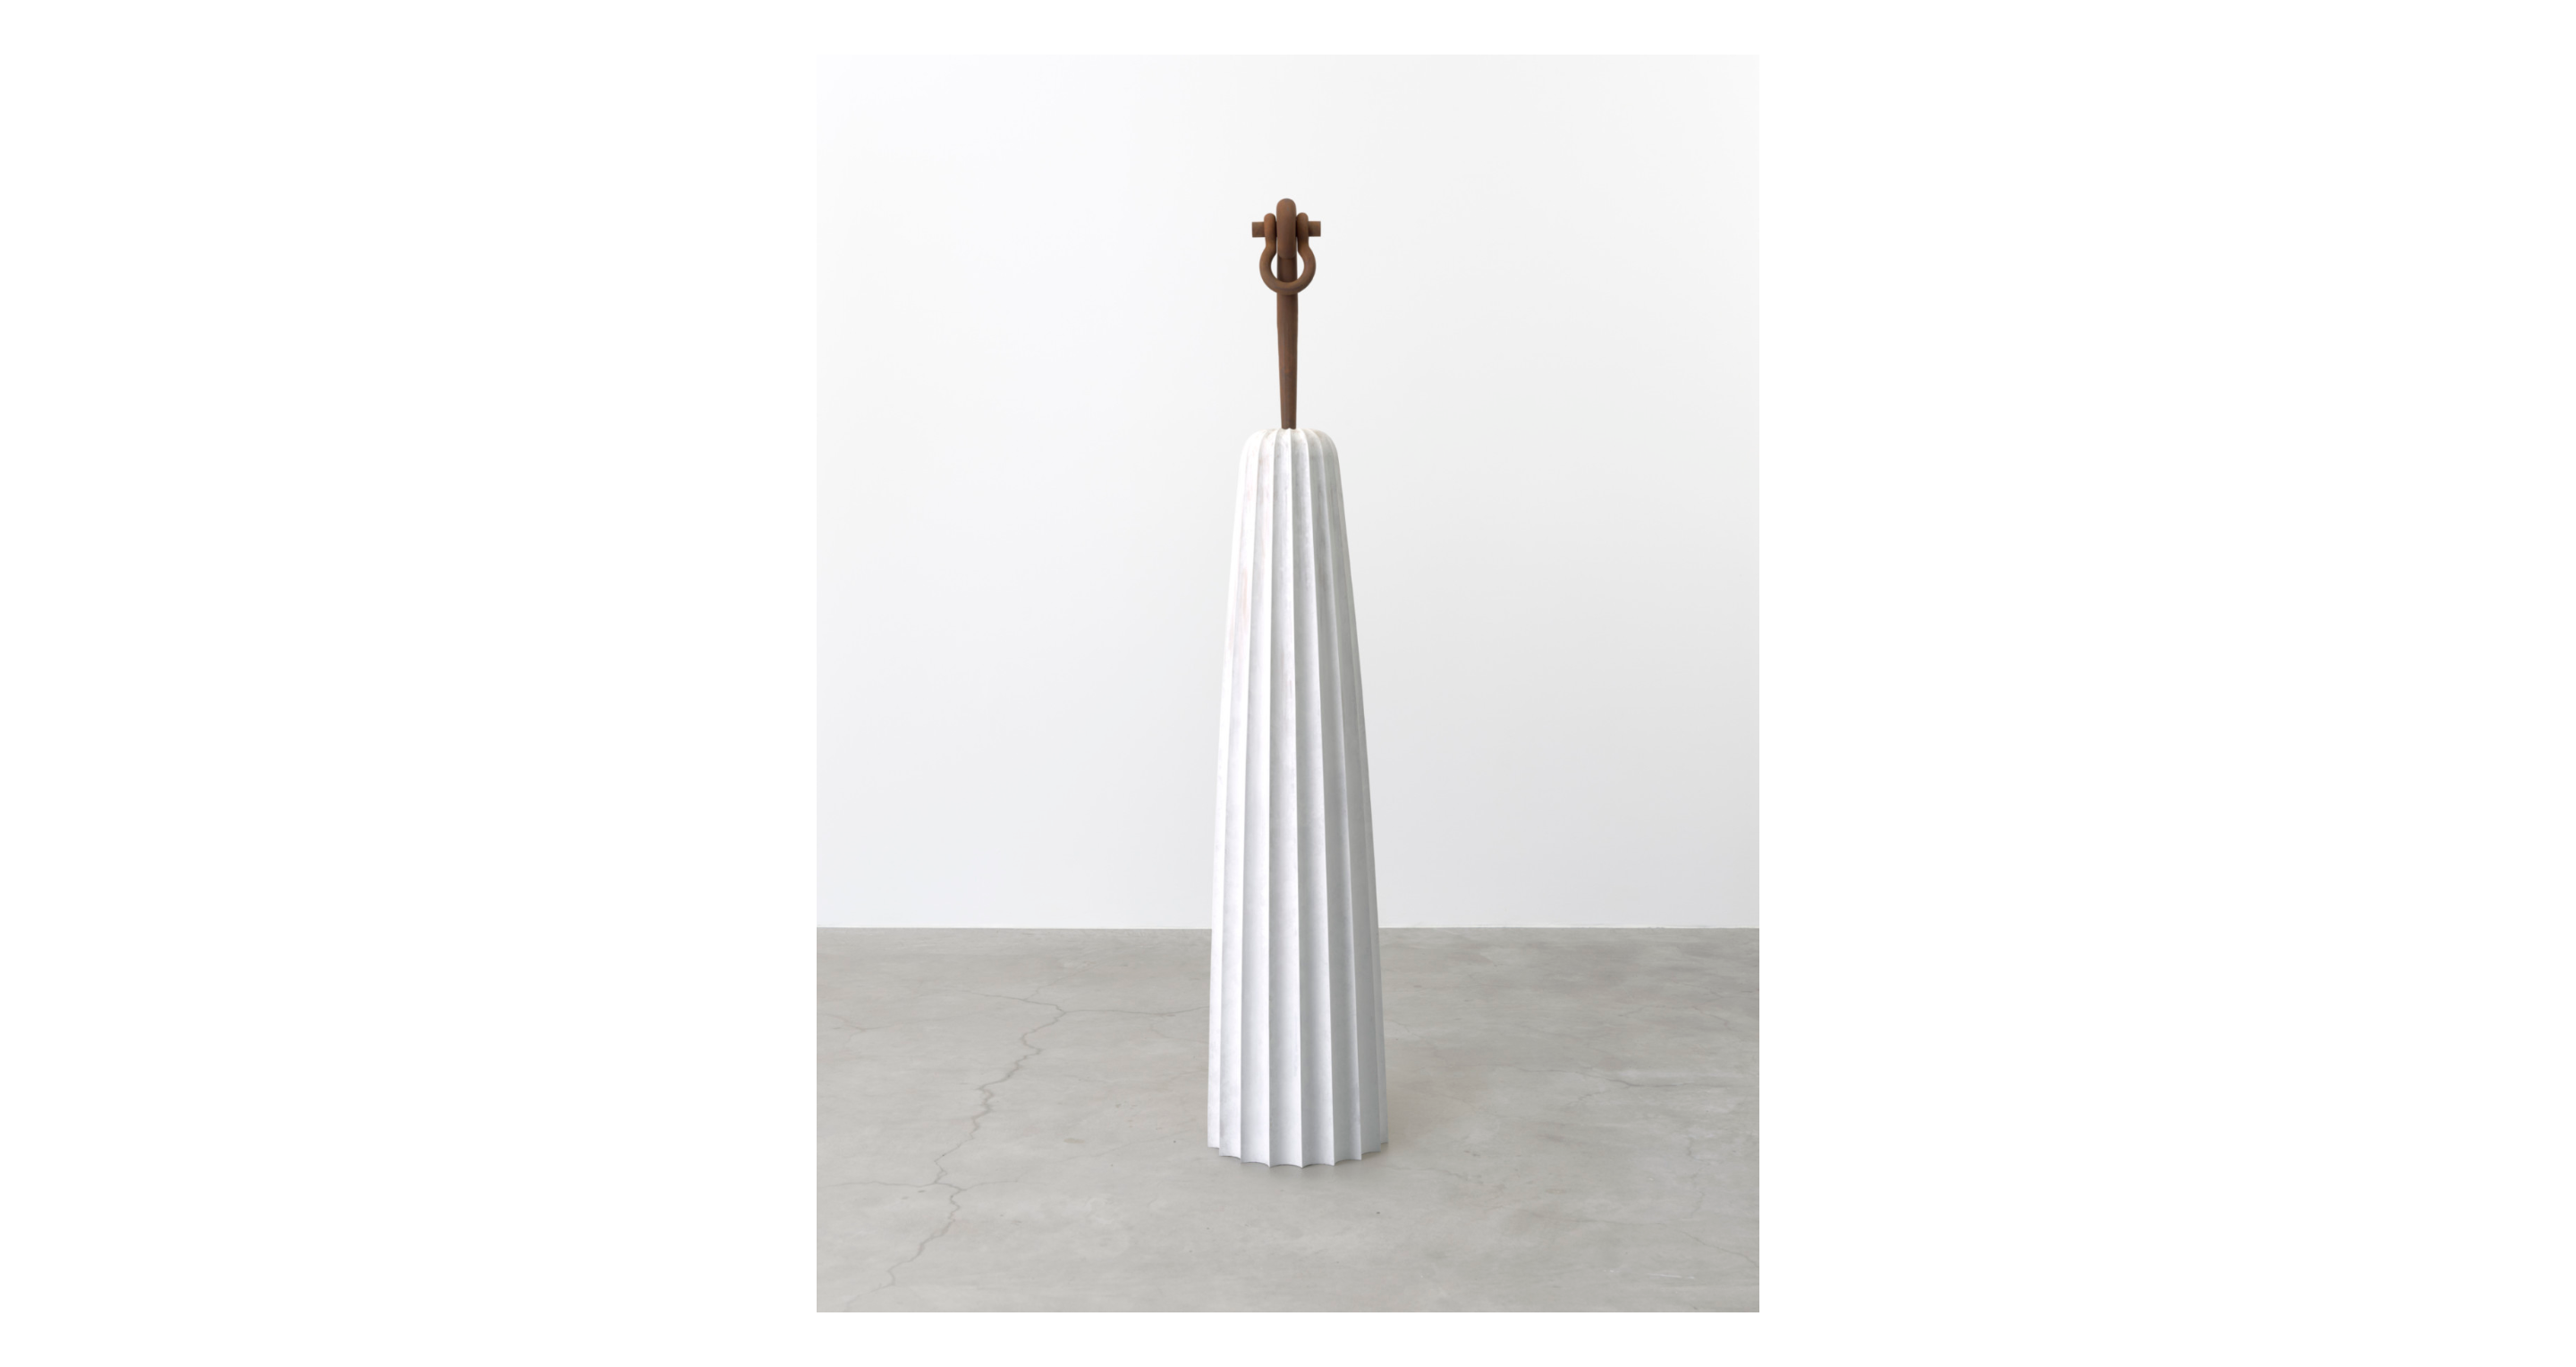 Martin Puryear, A Column for Sally Hemings, 2019, at his winter 2021 solo show at Matthew Marks Gallery